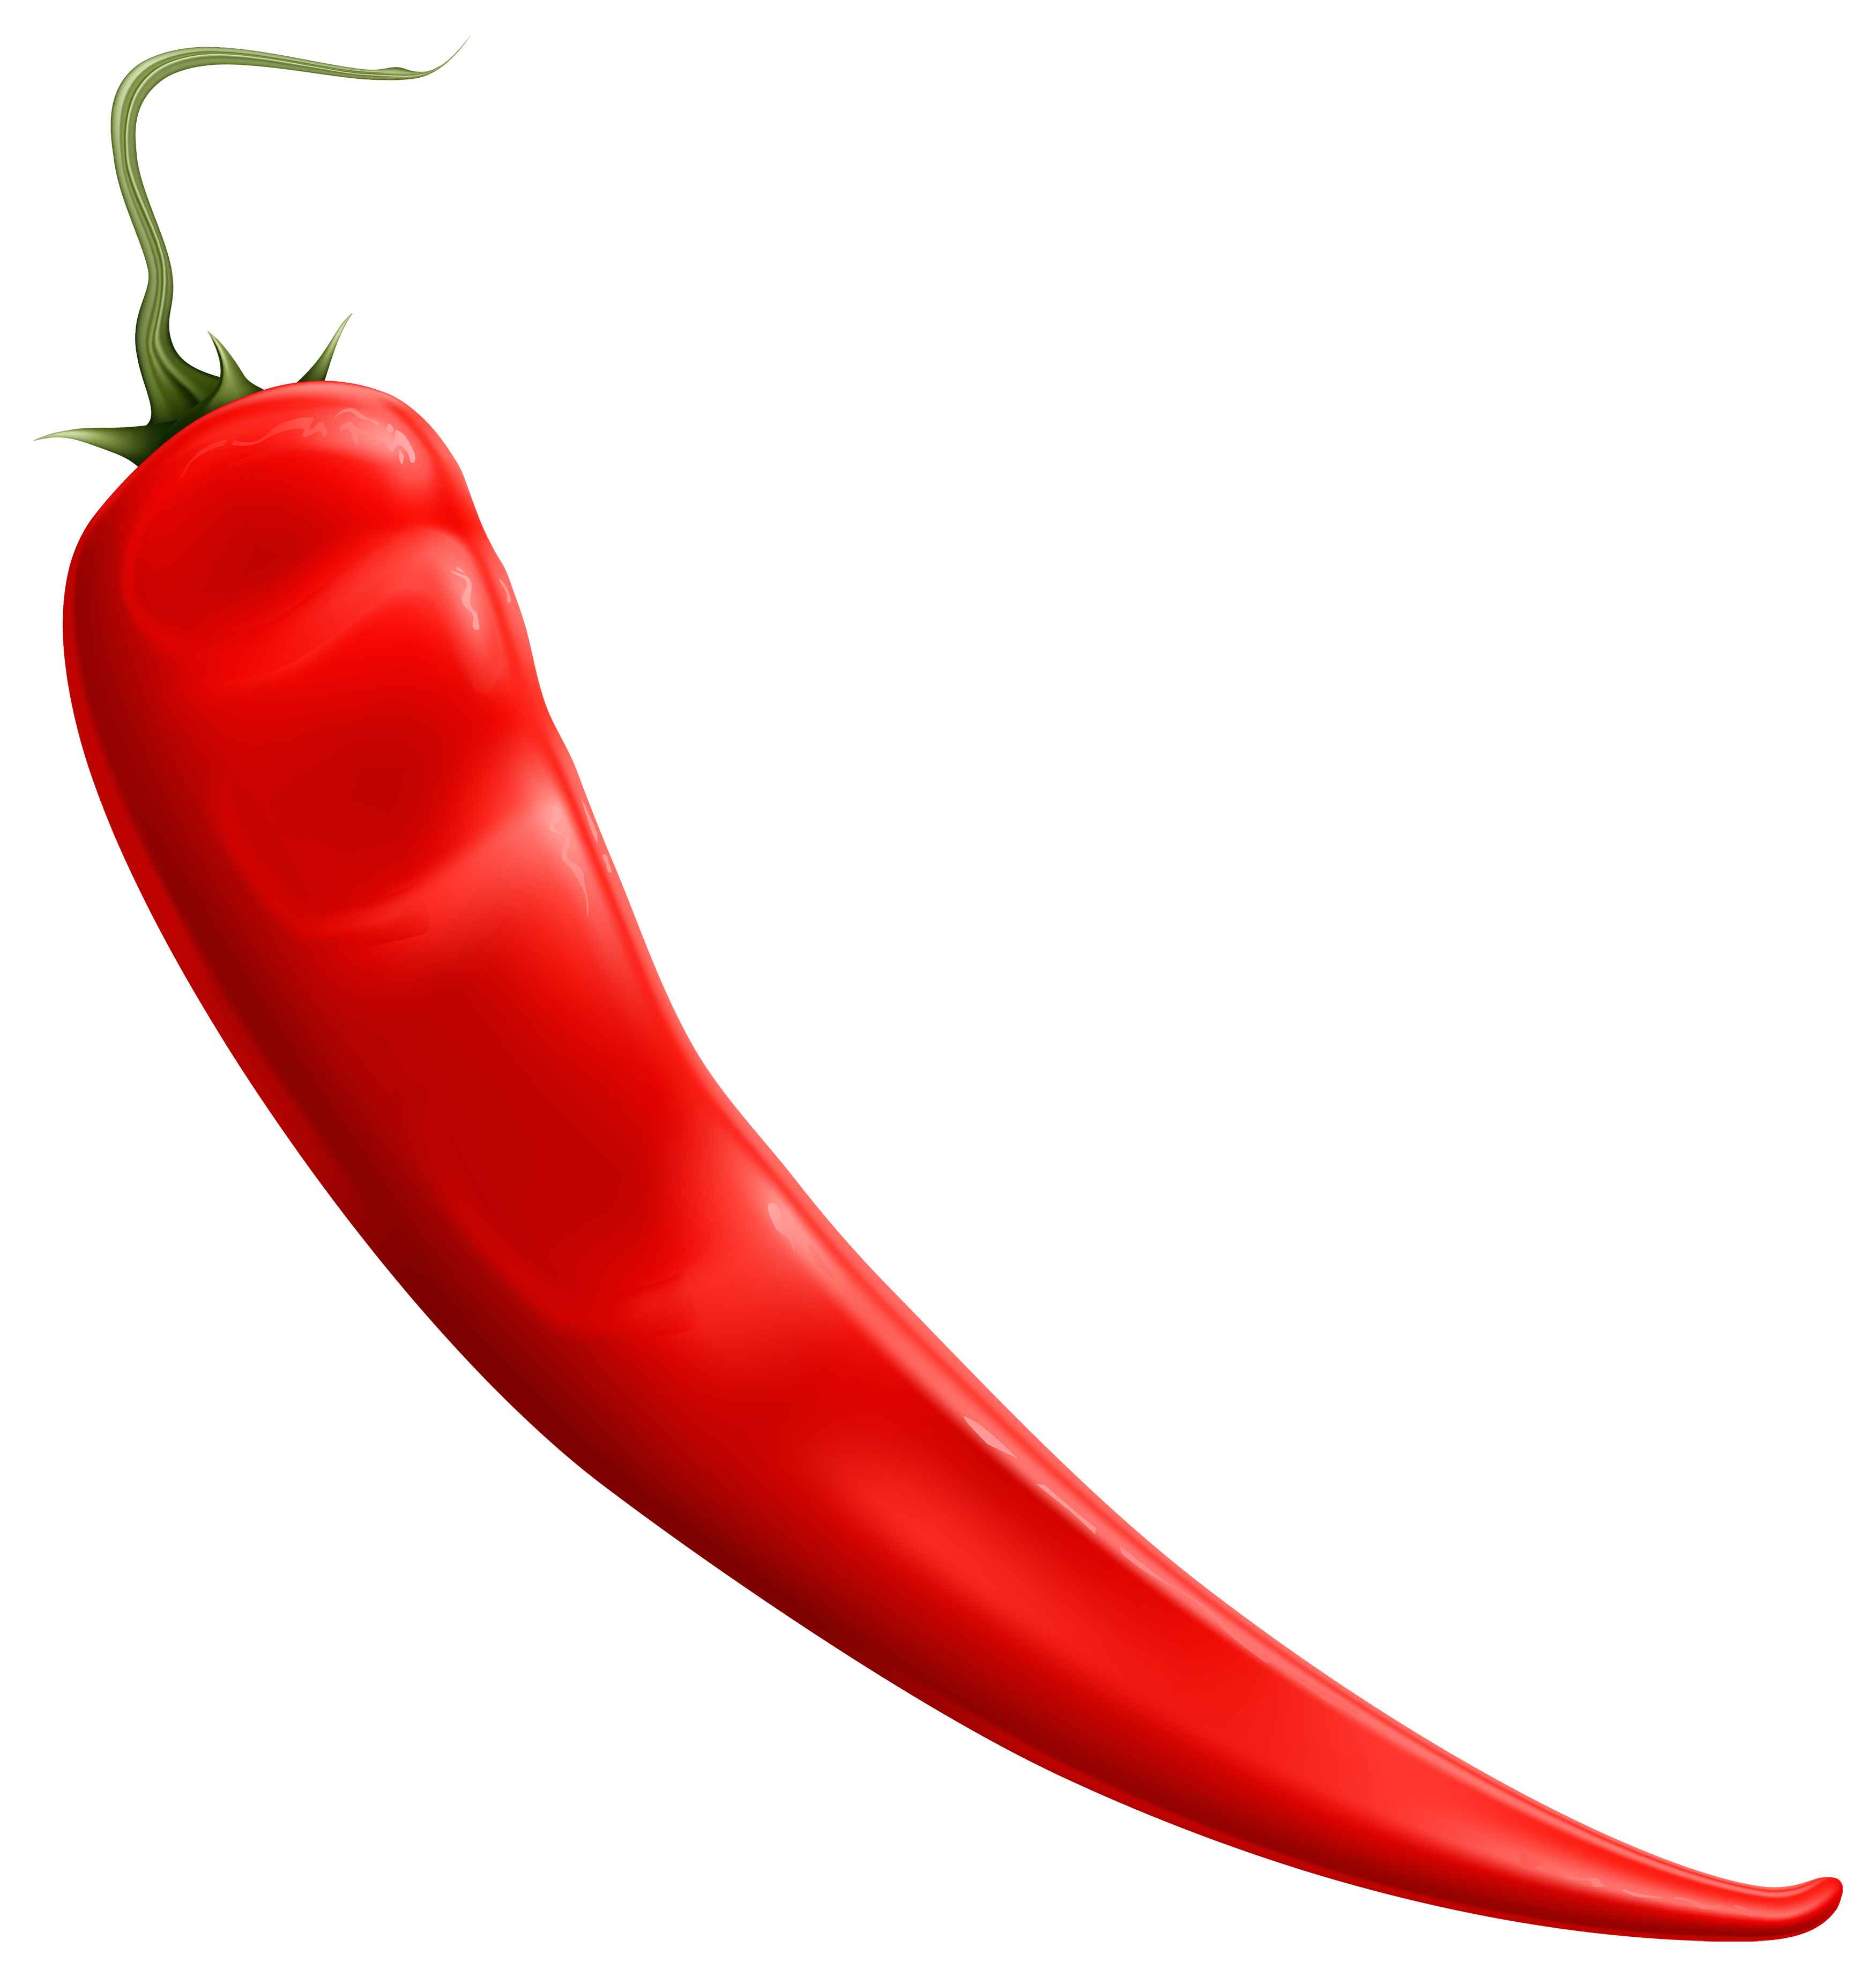 Red Chili Pepper PNG Clipart.